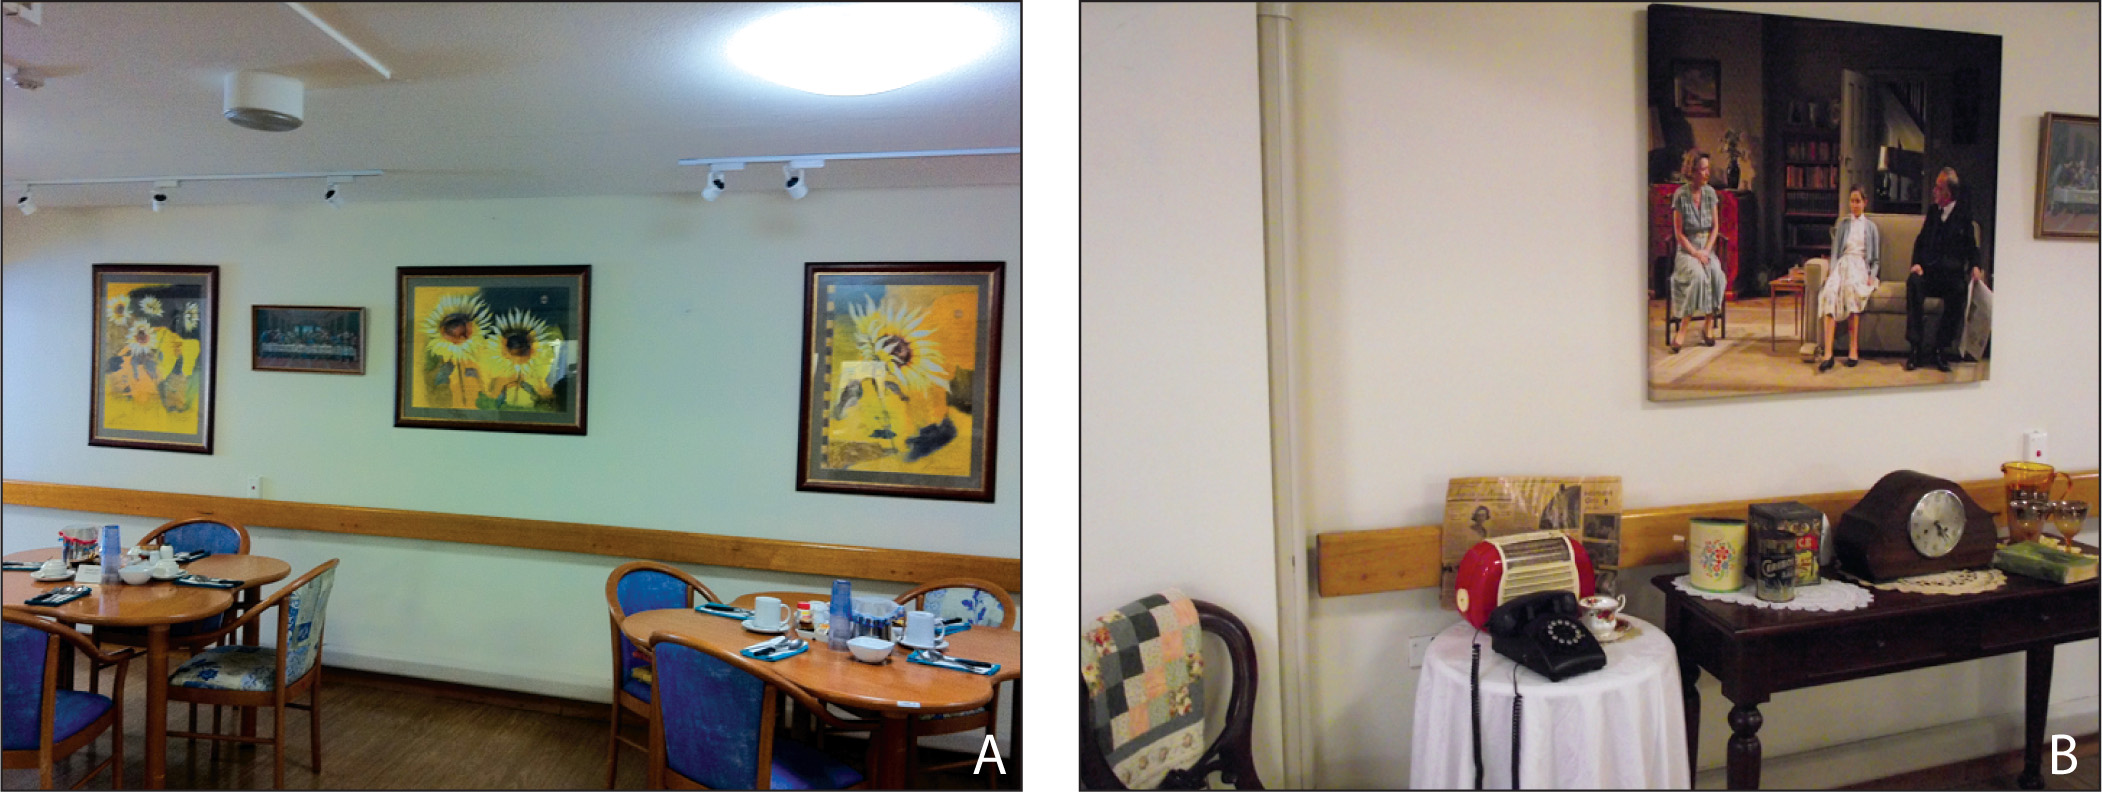 The indoor space (A) before and (B) after the multisensory reminiscence-based installation was put in place.